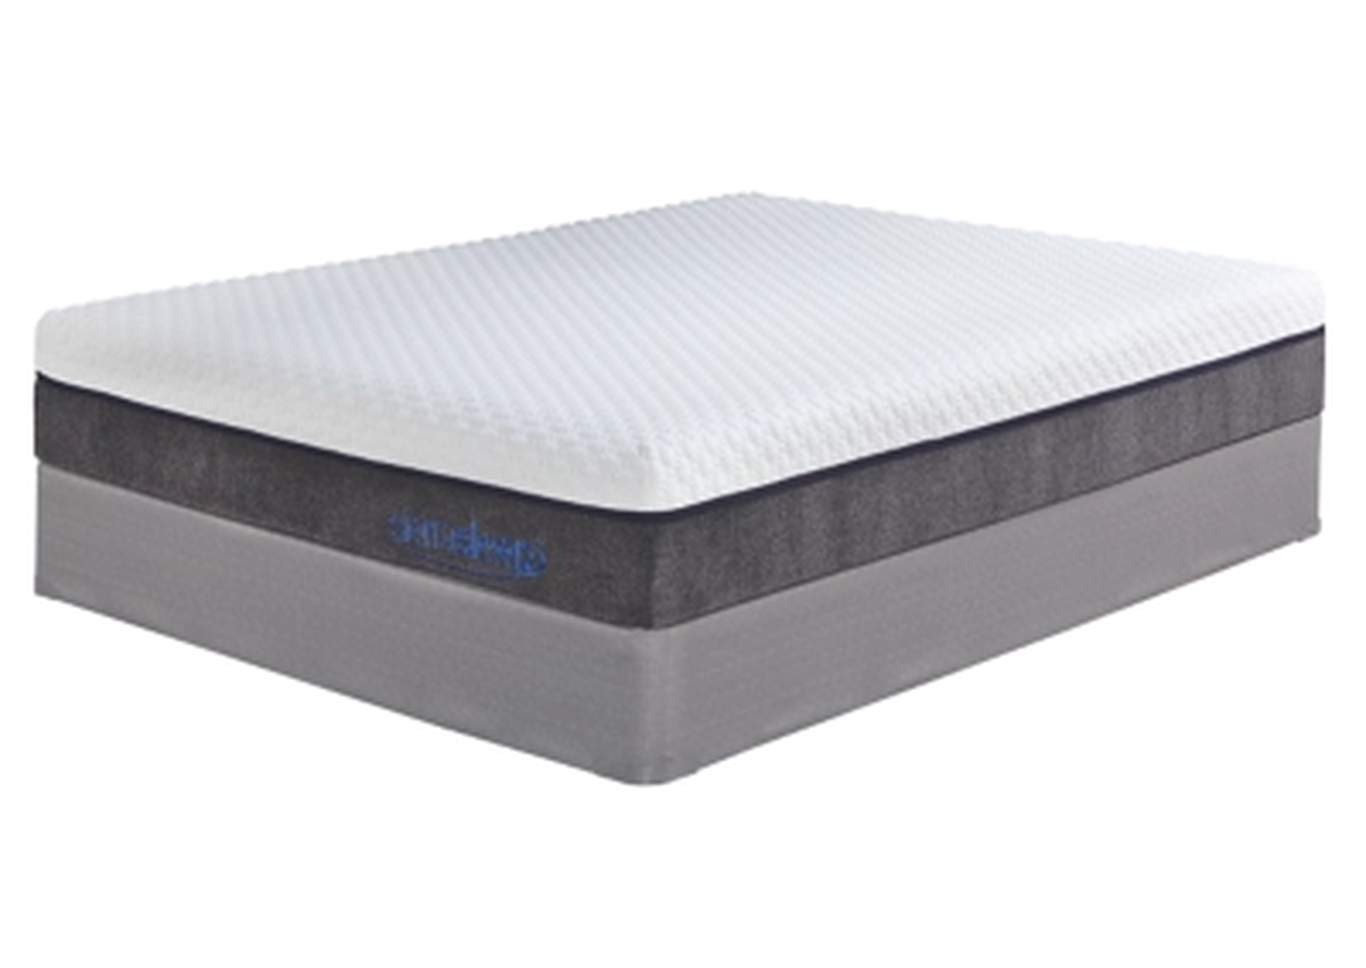 Mygel Hybrid 1100 Twin Mattress w/Foundation,Sierra Sleep by Ashley